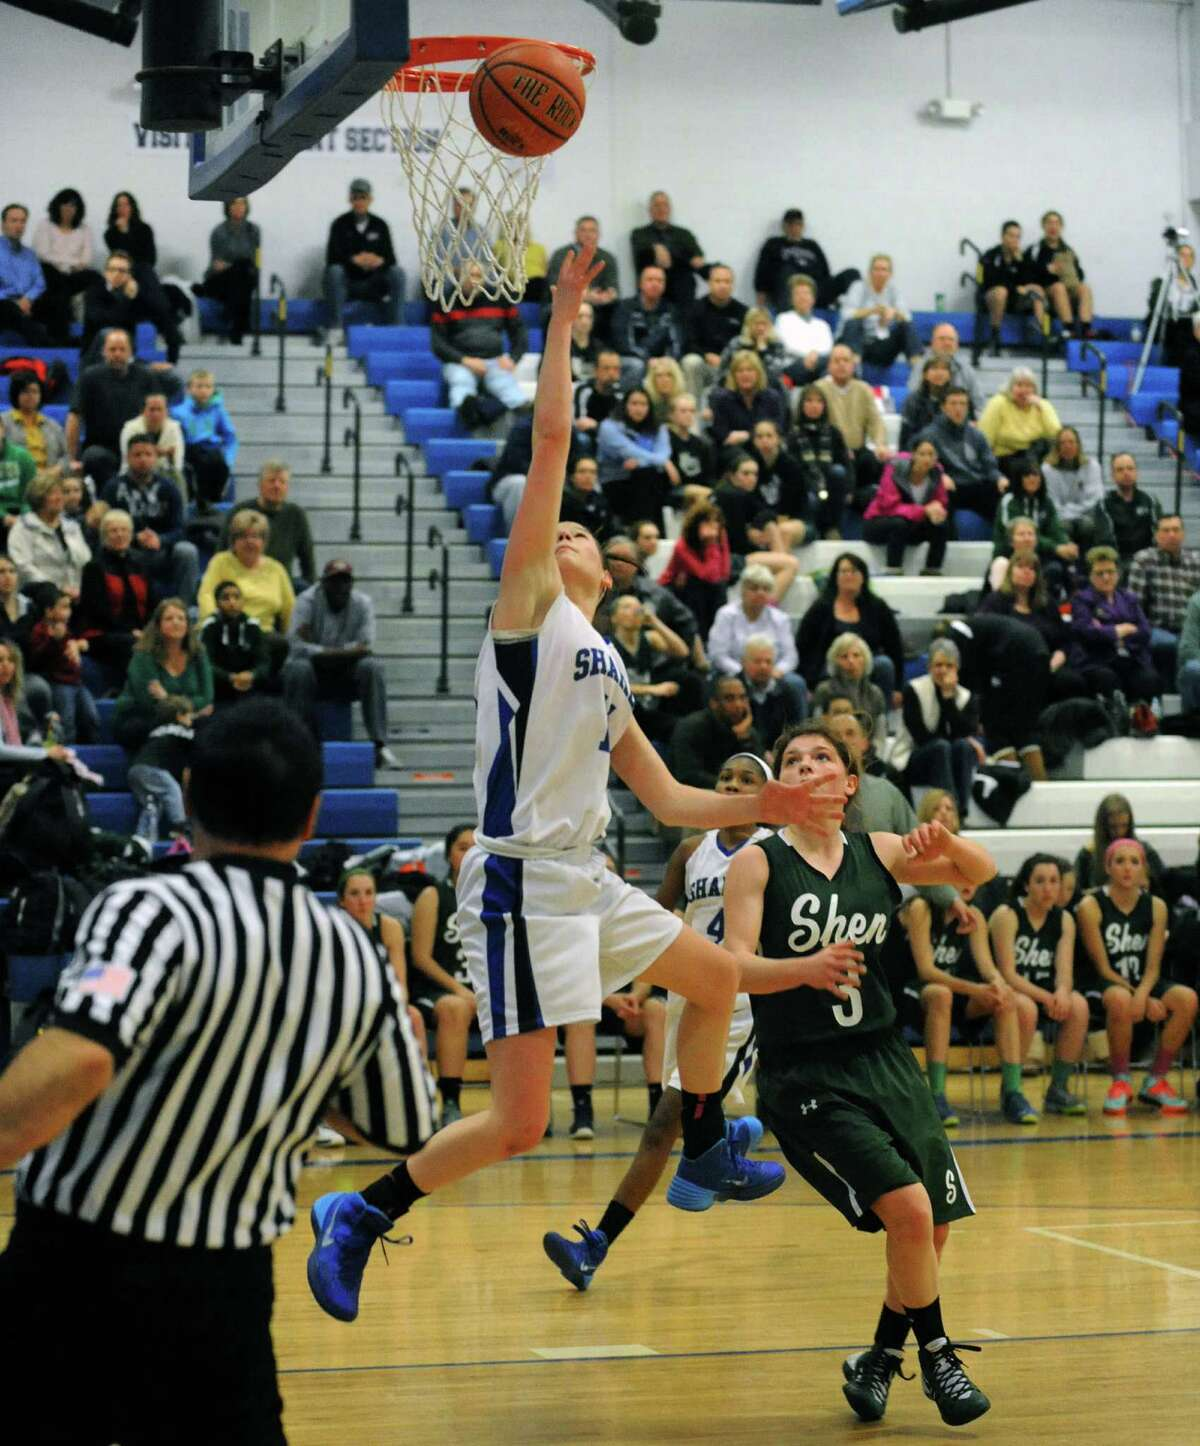 Shaker's Jenni Barra goes in for a basket during their girl's high school basketball game against Shen on Tuesday Jan. 14, 2014 in Colonie, N.Y. (Michael P. Farrell/Times Union)